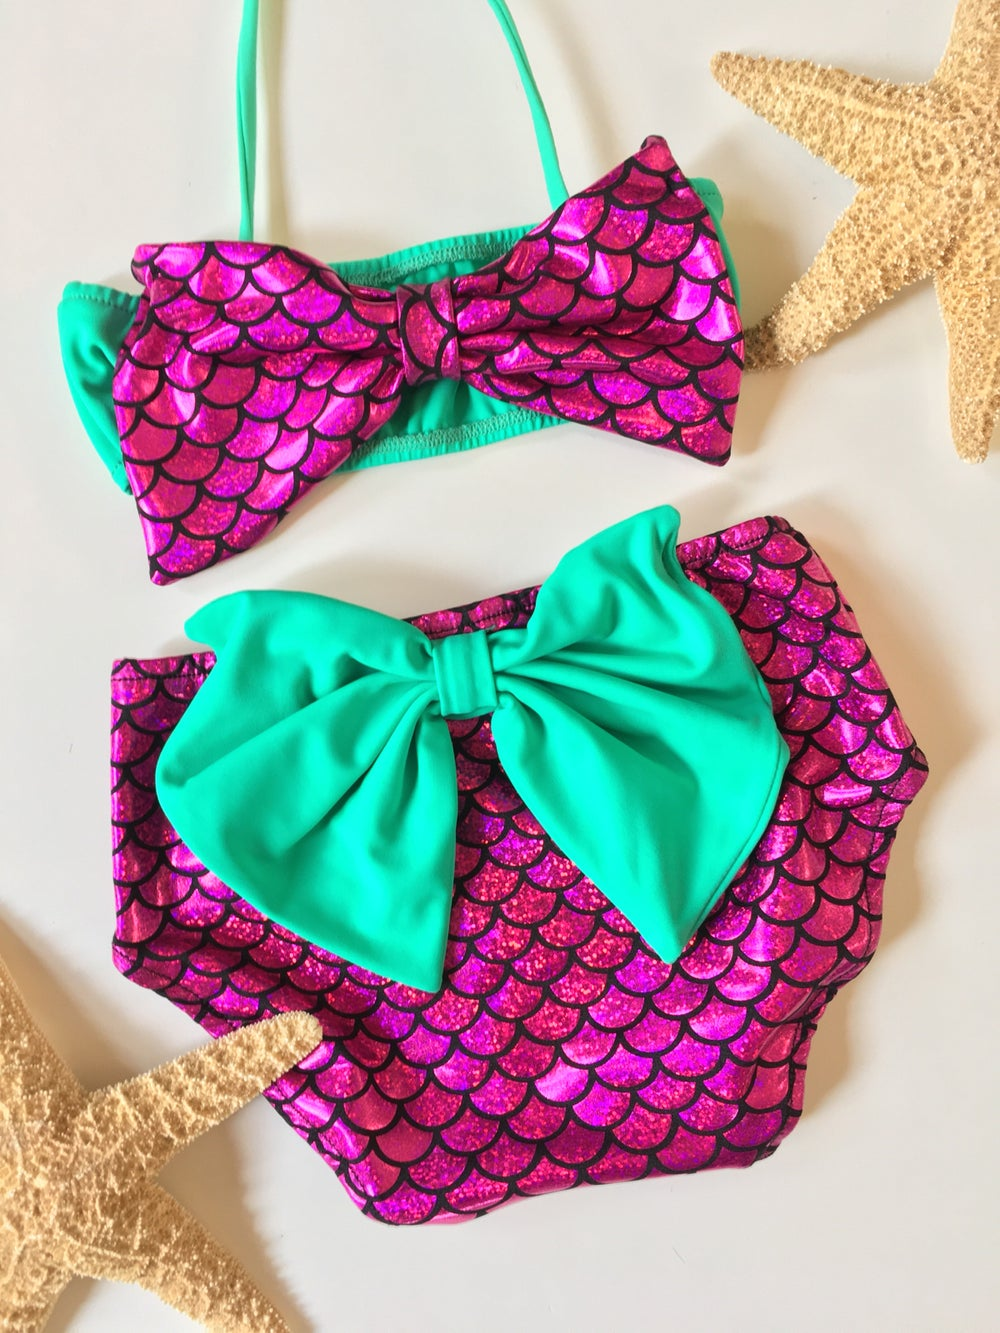 Image of Little Girlfriends bikini Magenta with mint green